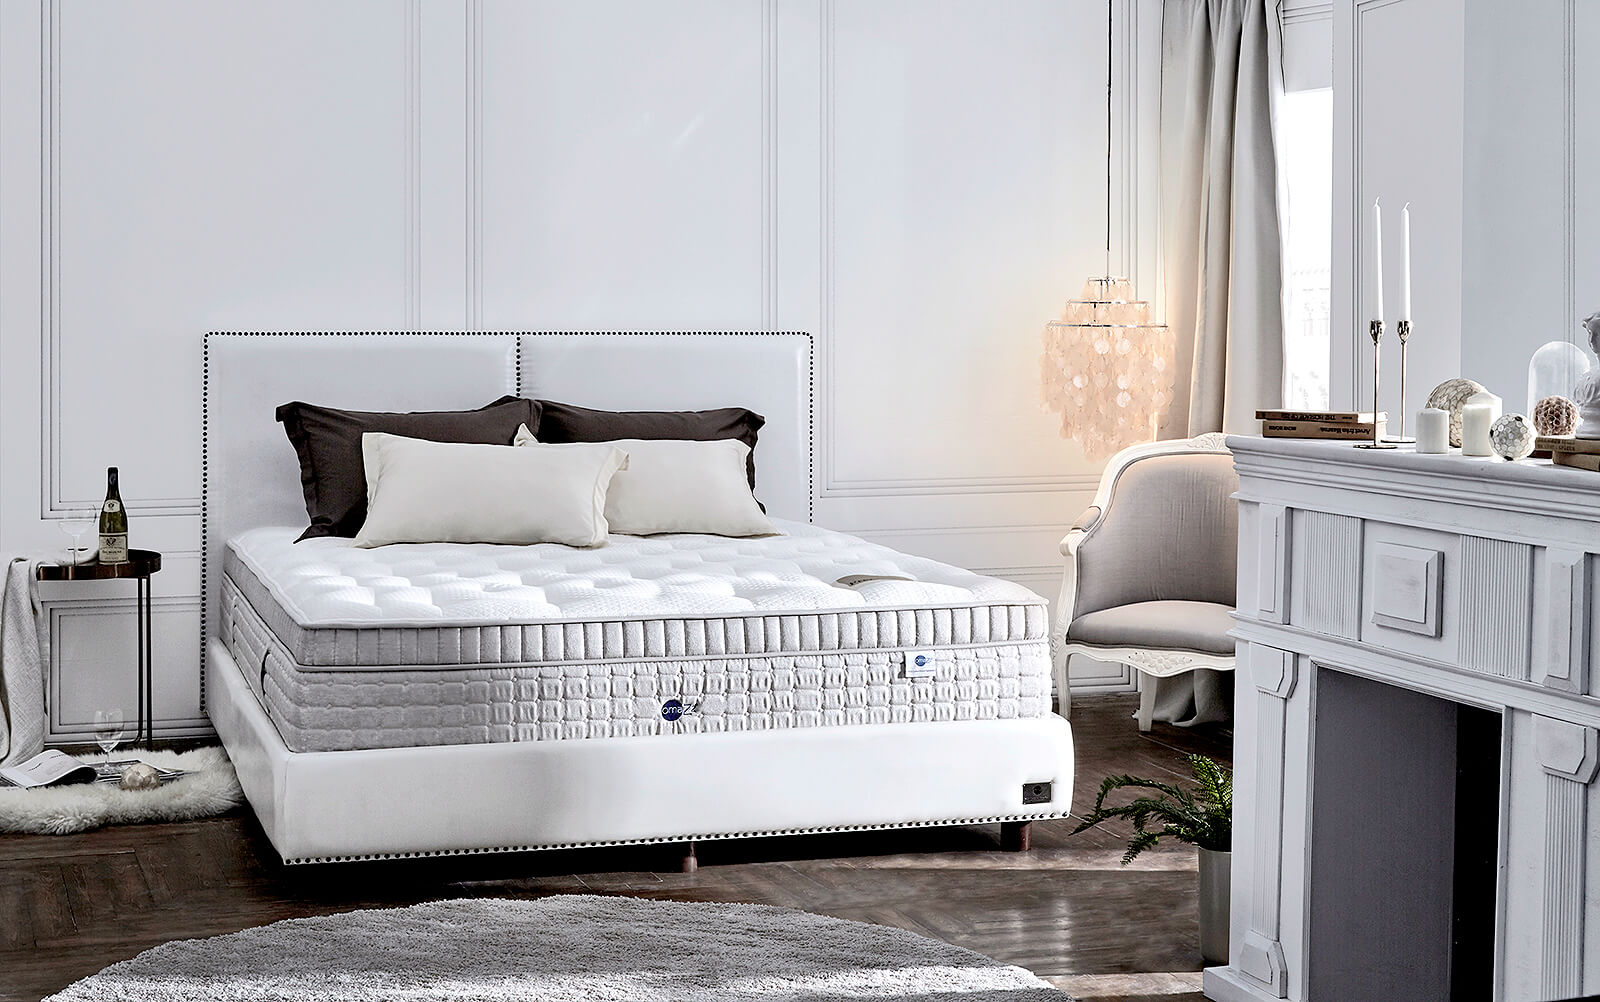 omazz-mattress-french-totto-o-1